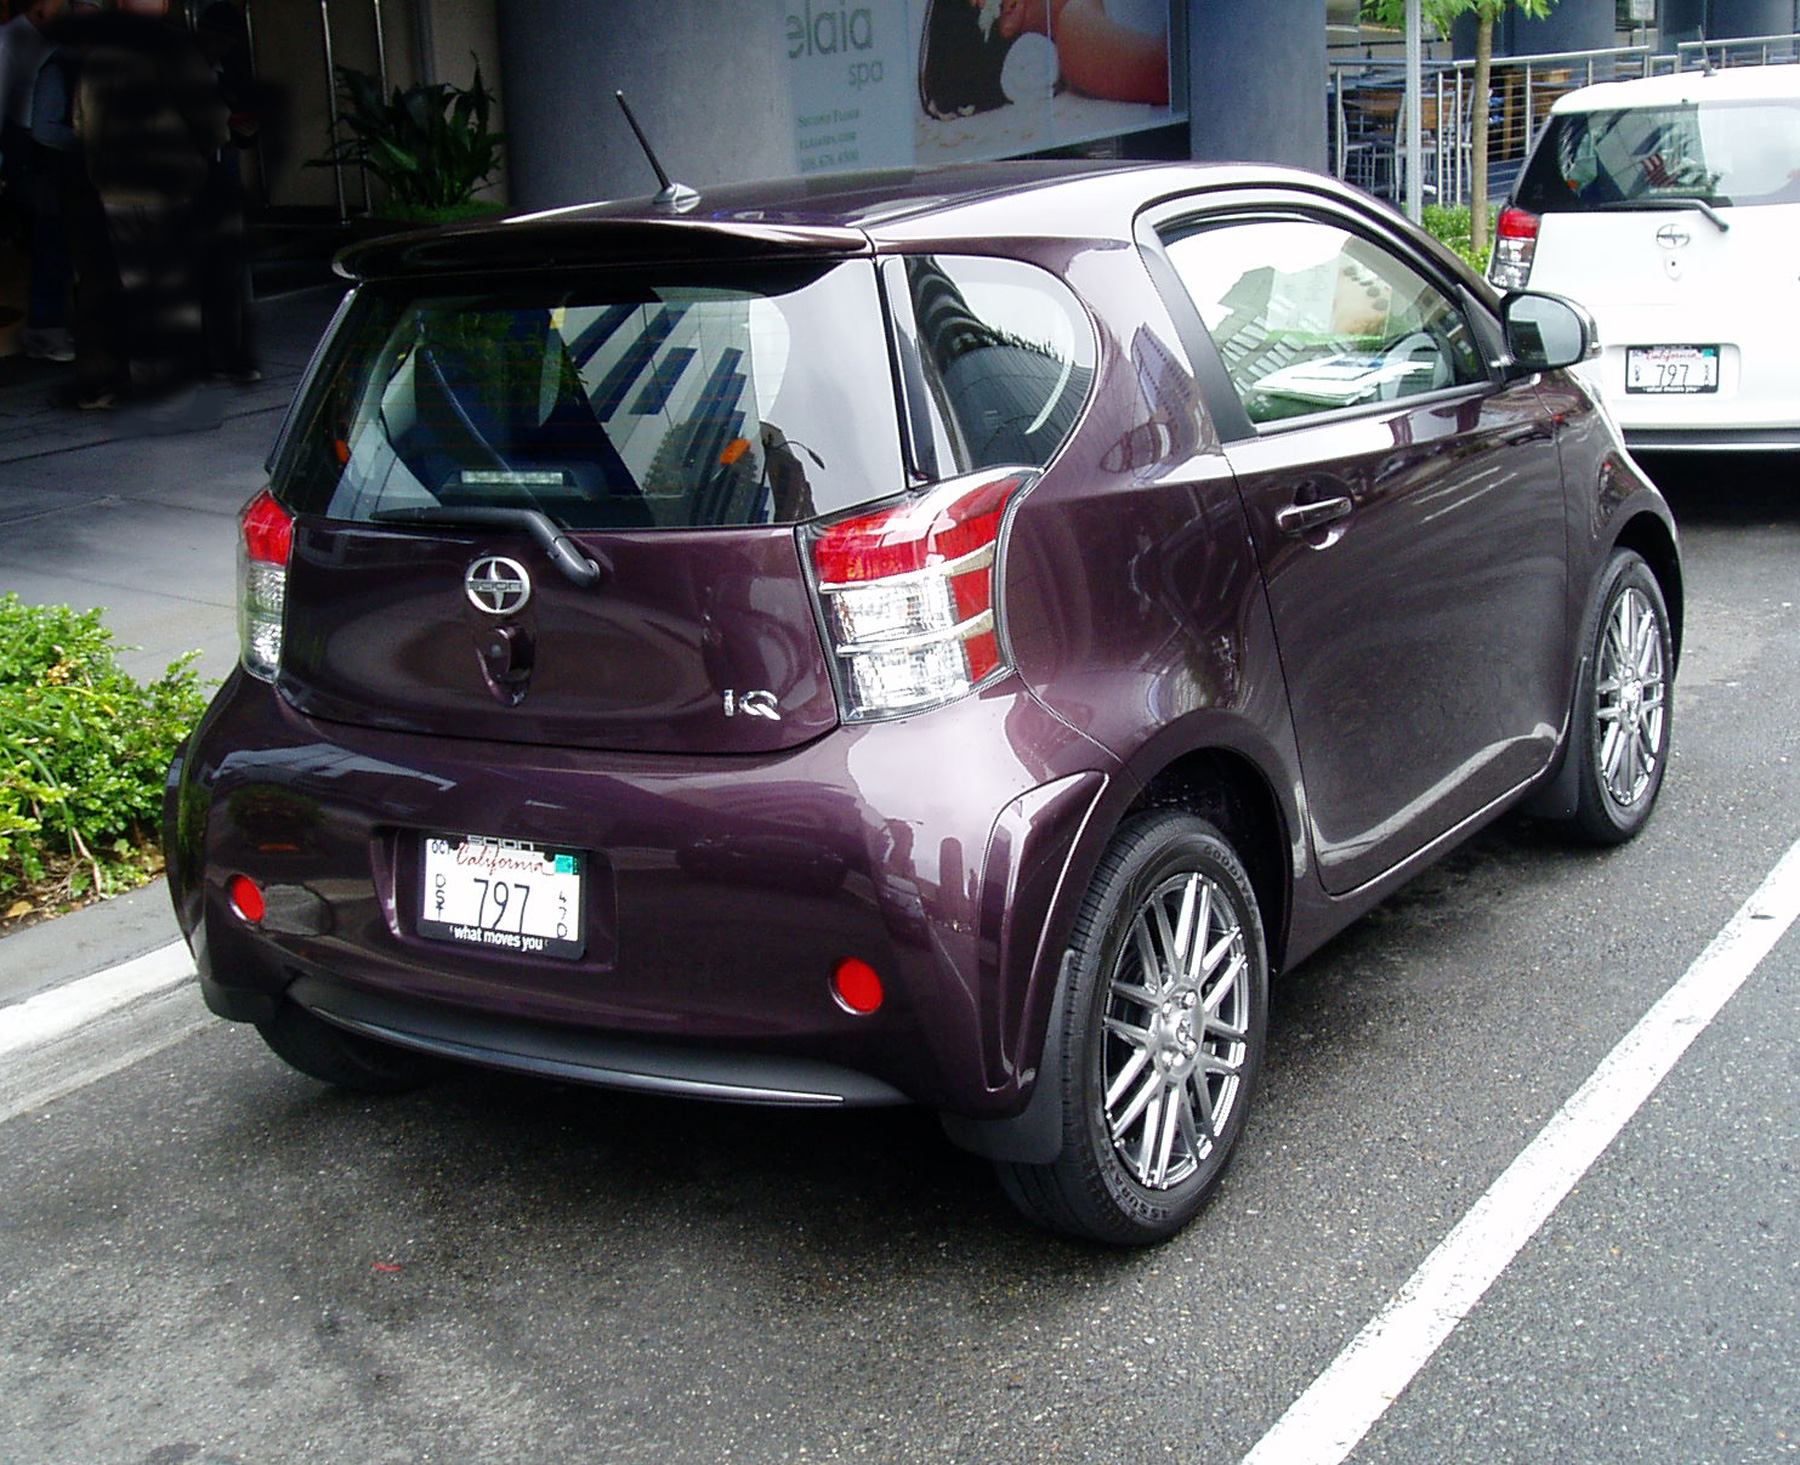 2012 Scion Iq Micro Subcompact Real Smart Car Design New On